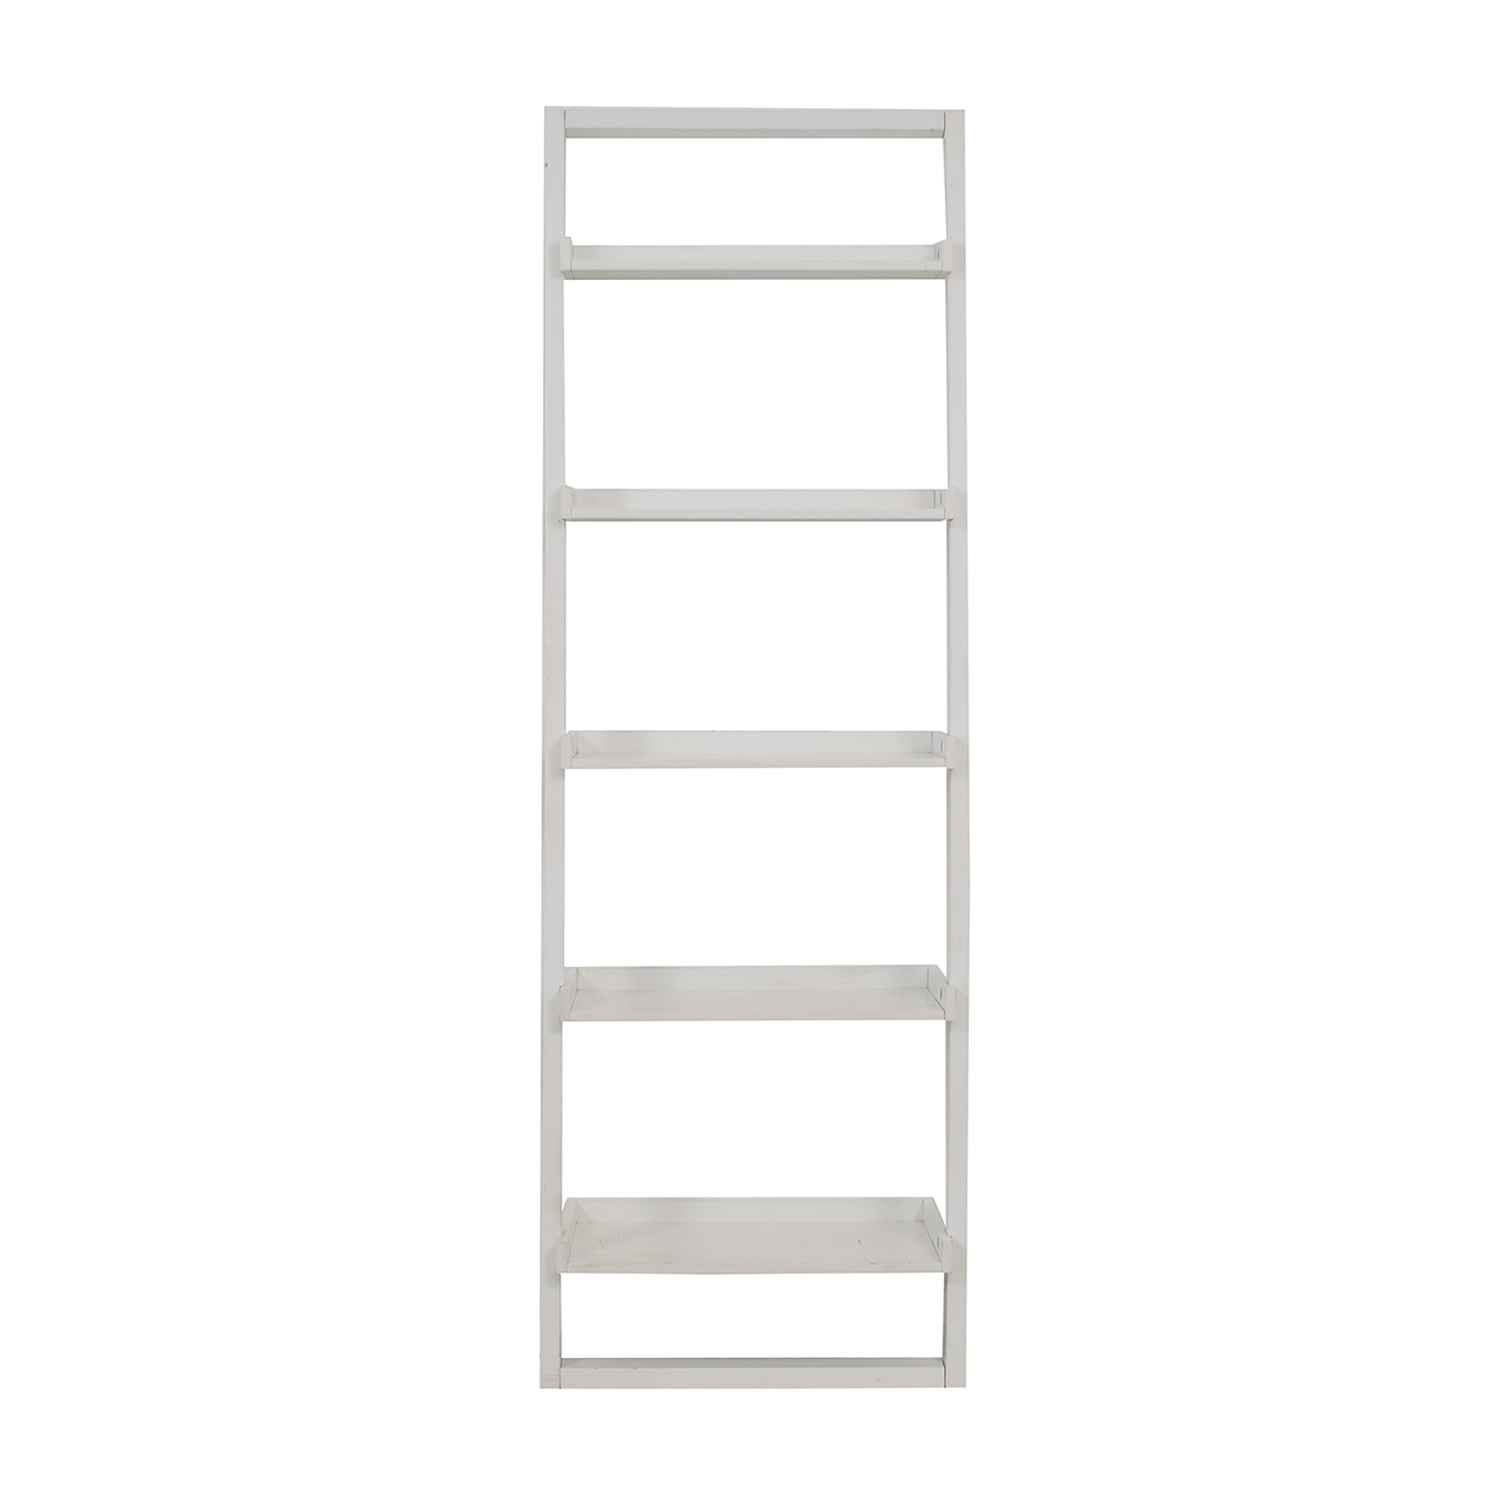 shop Crate & Barrel White Leaning Bookshelf Crate & Barrel Storage